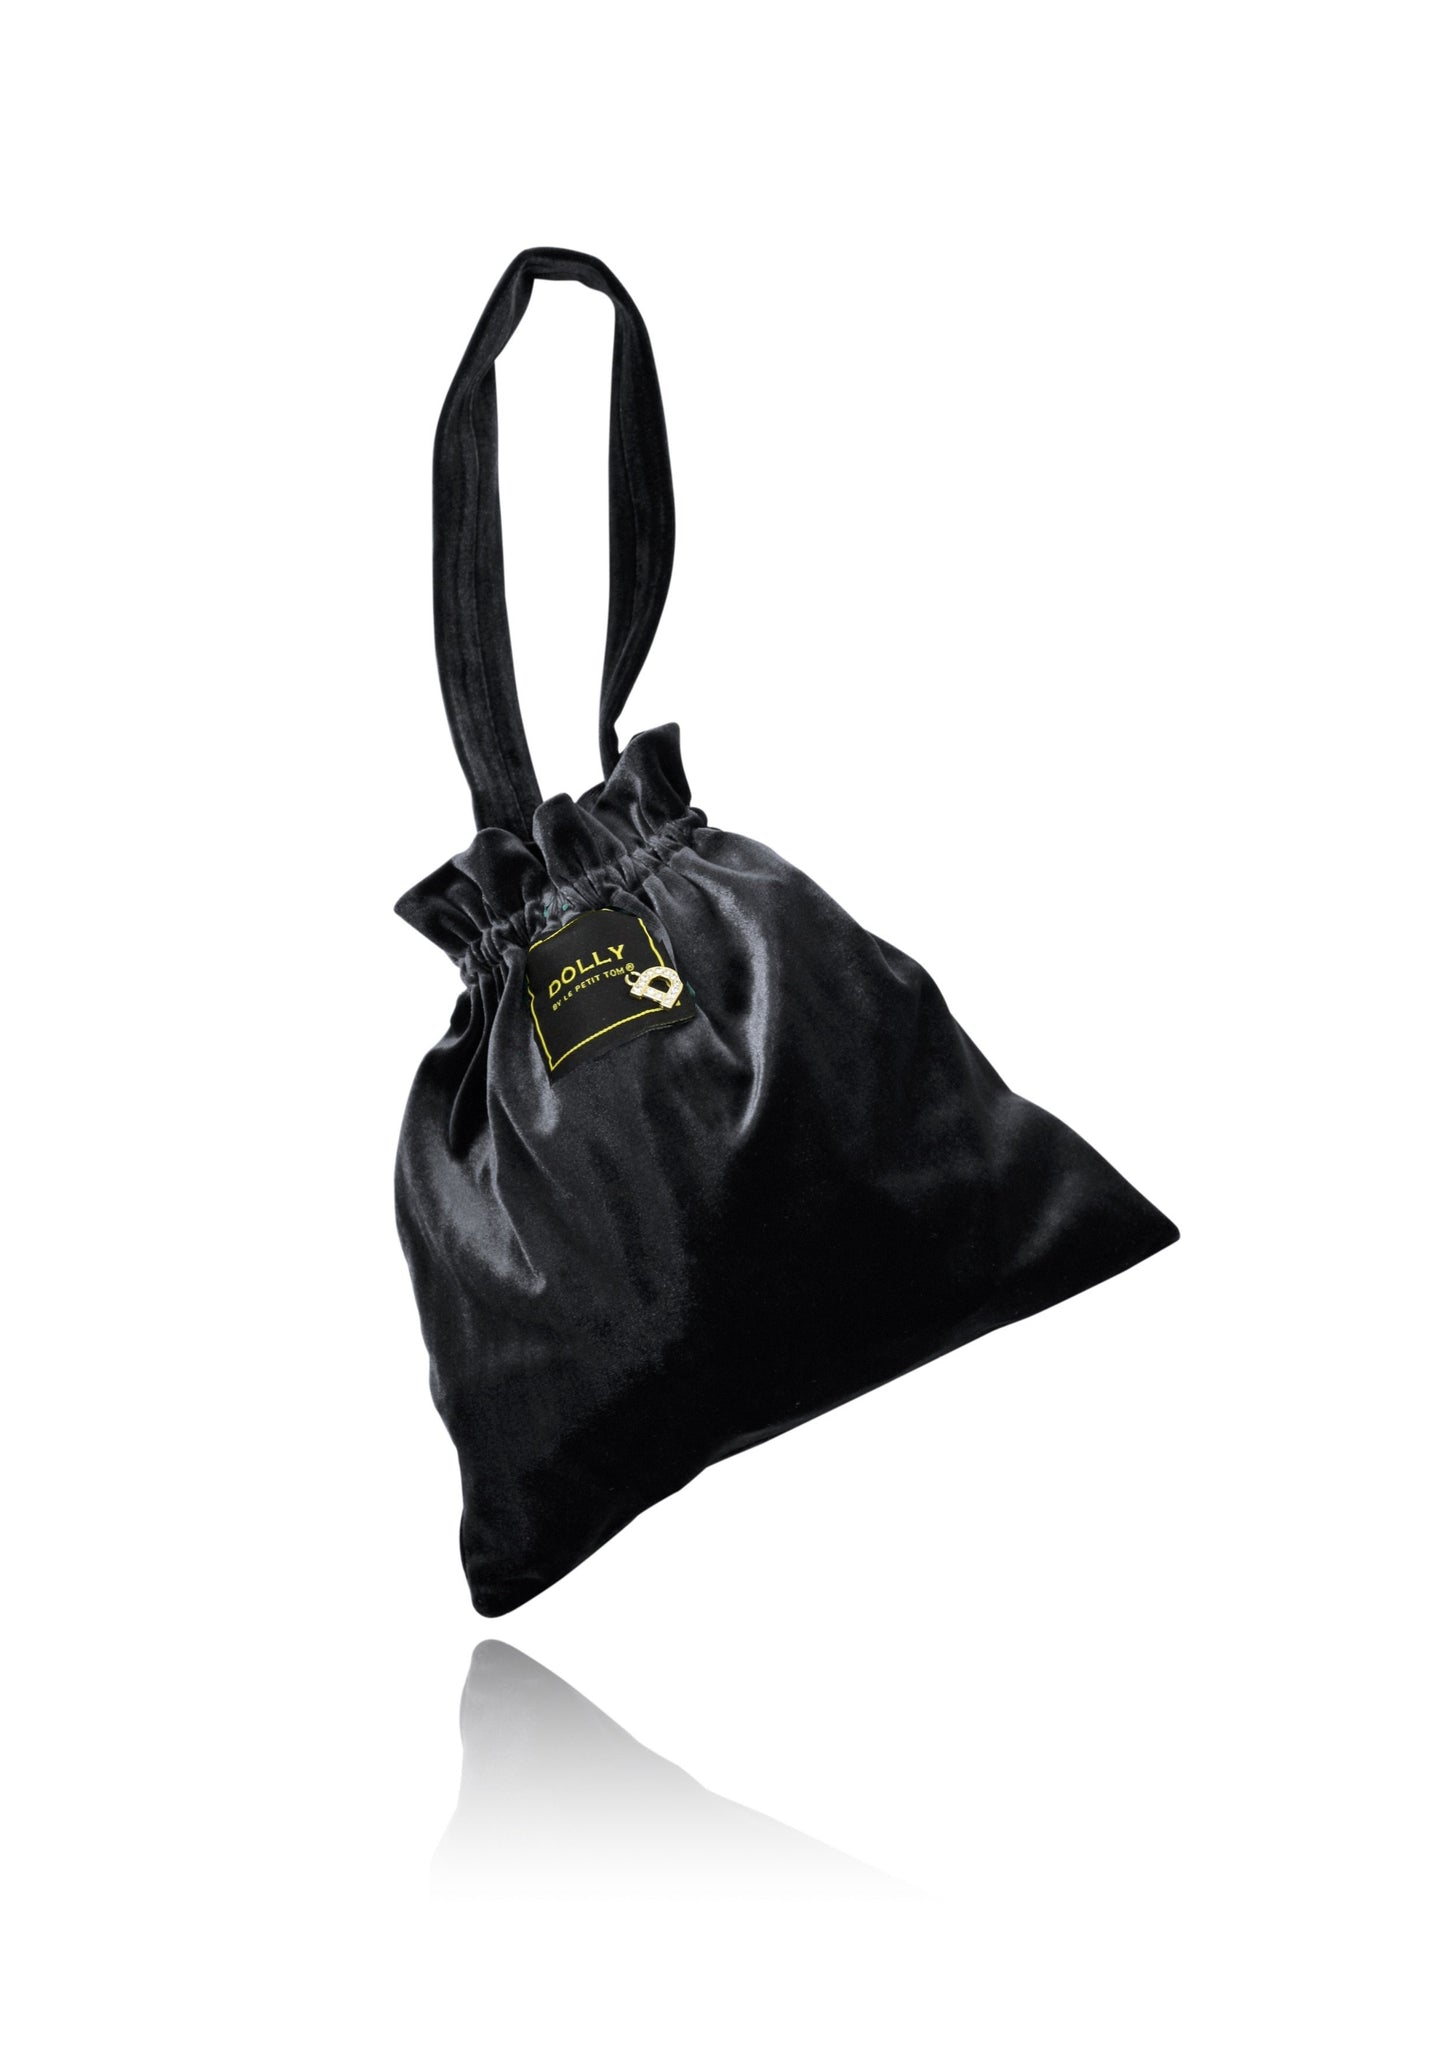 DOLLY by Le Petit Tom ® VELVET POUCH BAG black